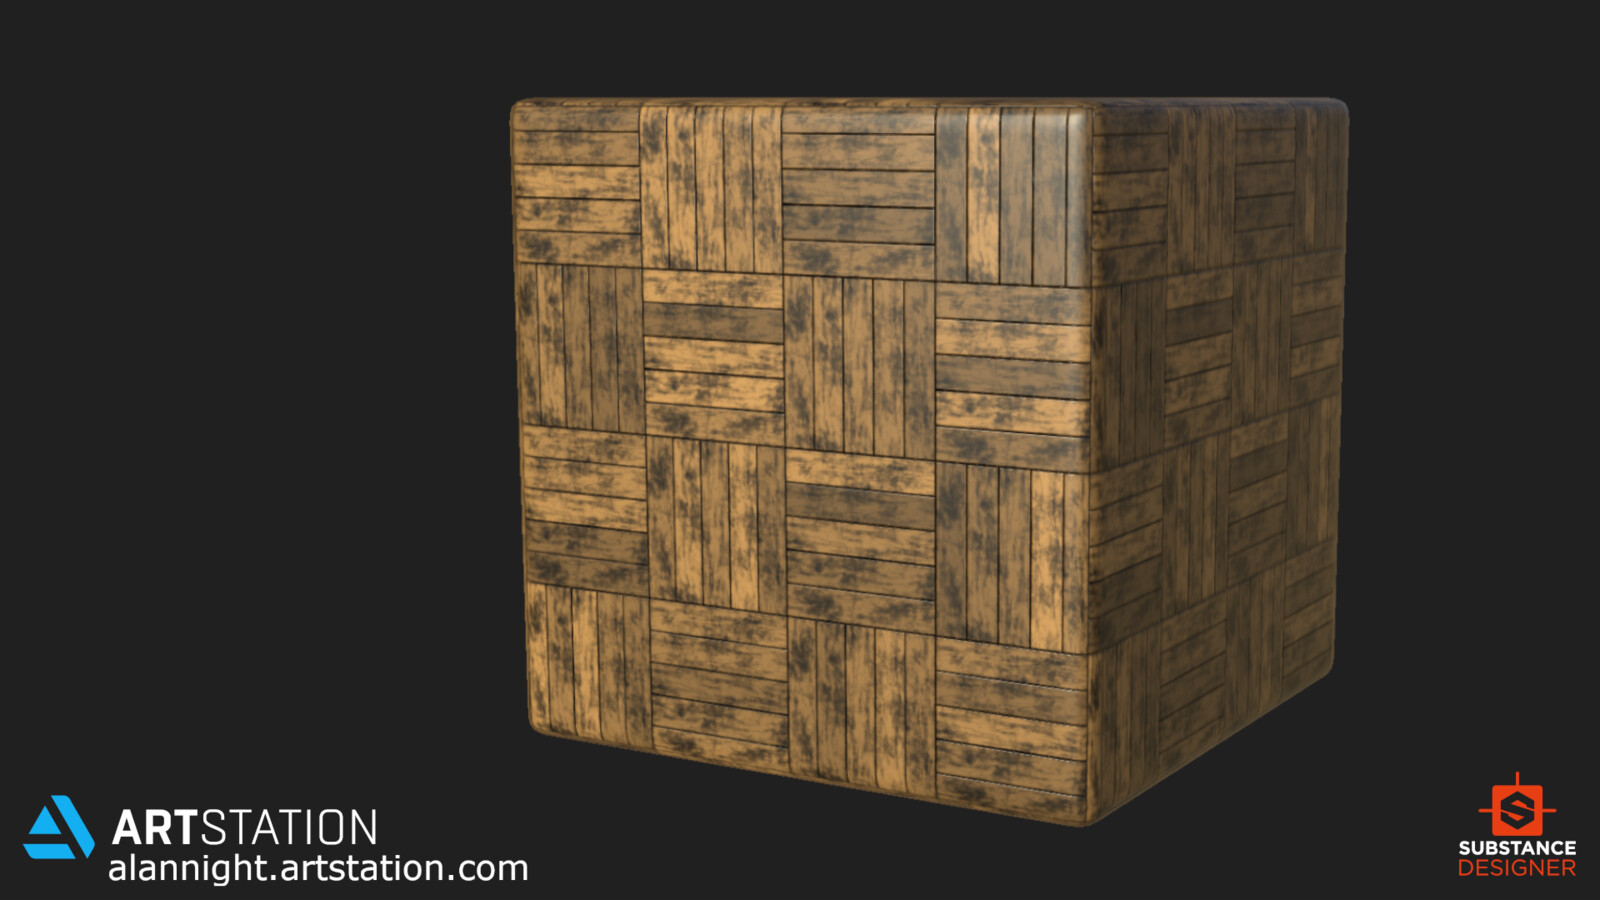 Cube Render in Substance Designer